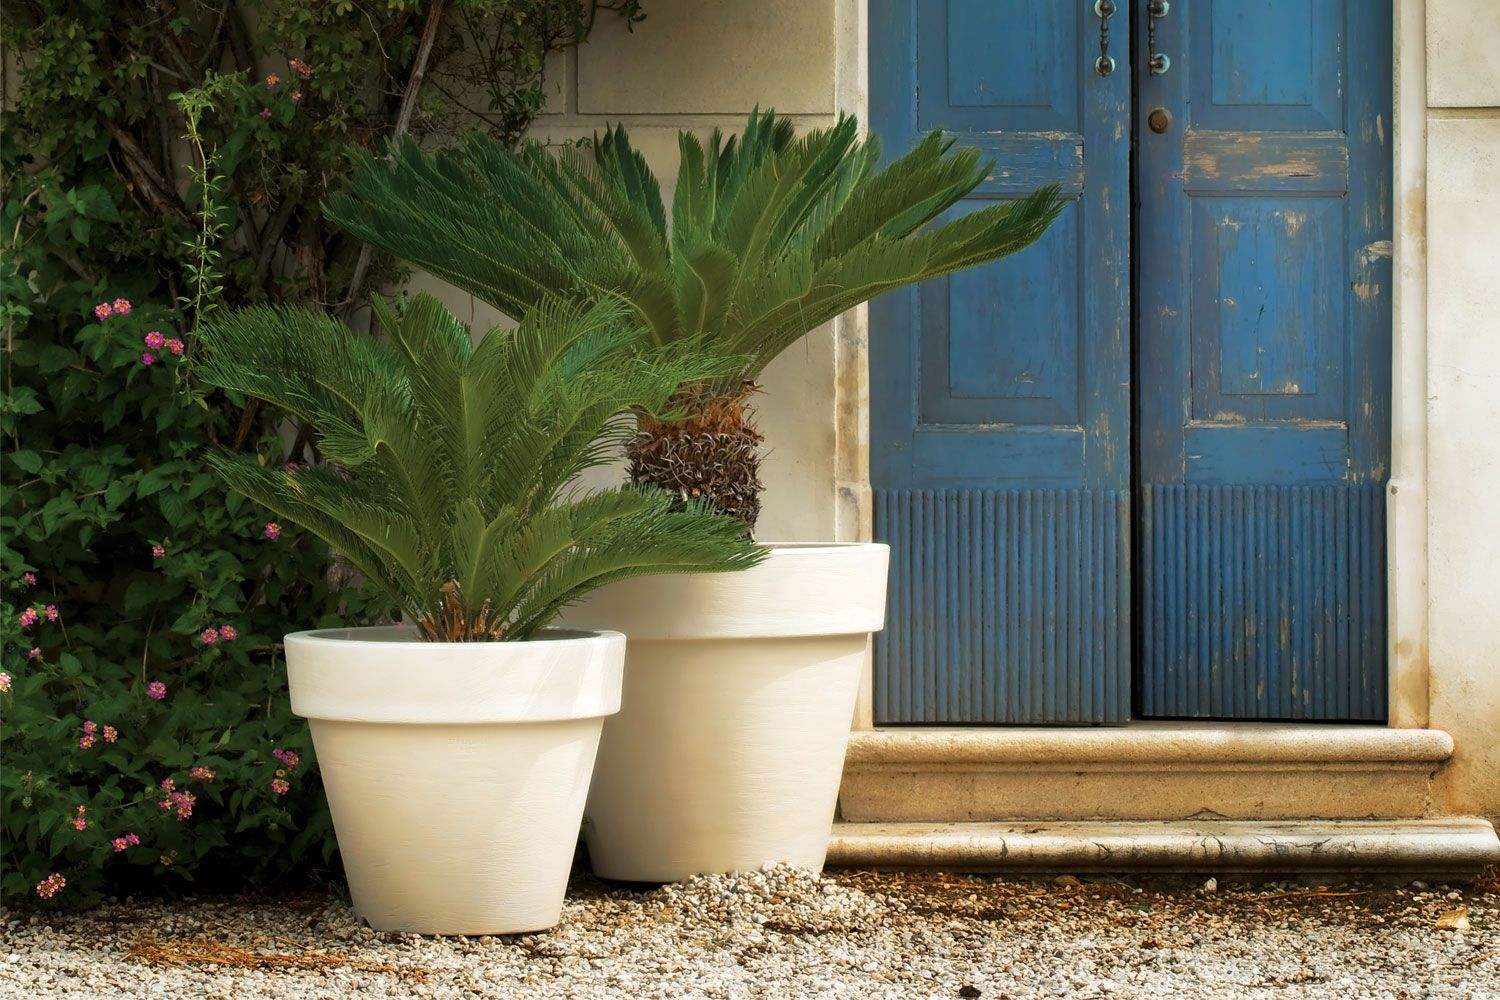 Pin By Wg Outdoor Life On Pots Planters And Urns Indoor Outdoor Planter Outdoor Planters Large Outdoor Planters